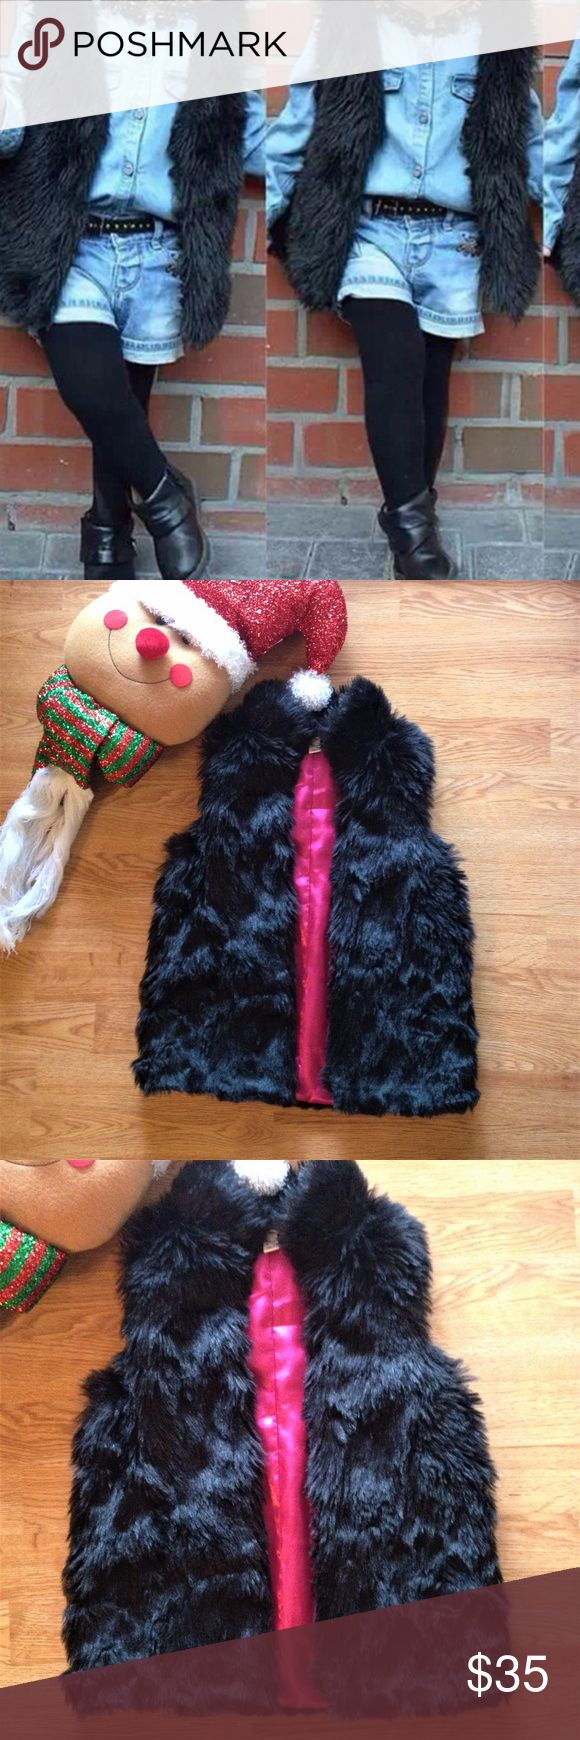 Lands End Kids Black fur vest with Hot Pink lining Lands End Kids Girls Black fur vest with Hot Pink lining Size Large 6x-7 79% polyacryl 21% polyester Futter;100% polyester New with out tag  Pit/pit 14-16' Length 19 So cute and stylish Lands End Jackets & Coats Vests